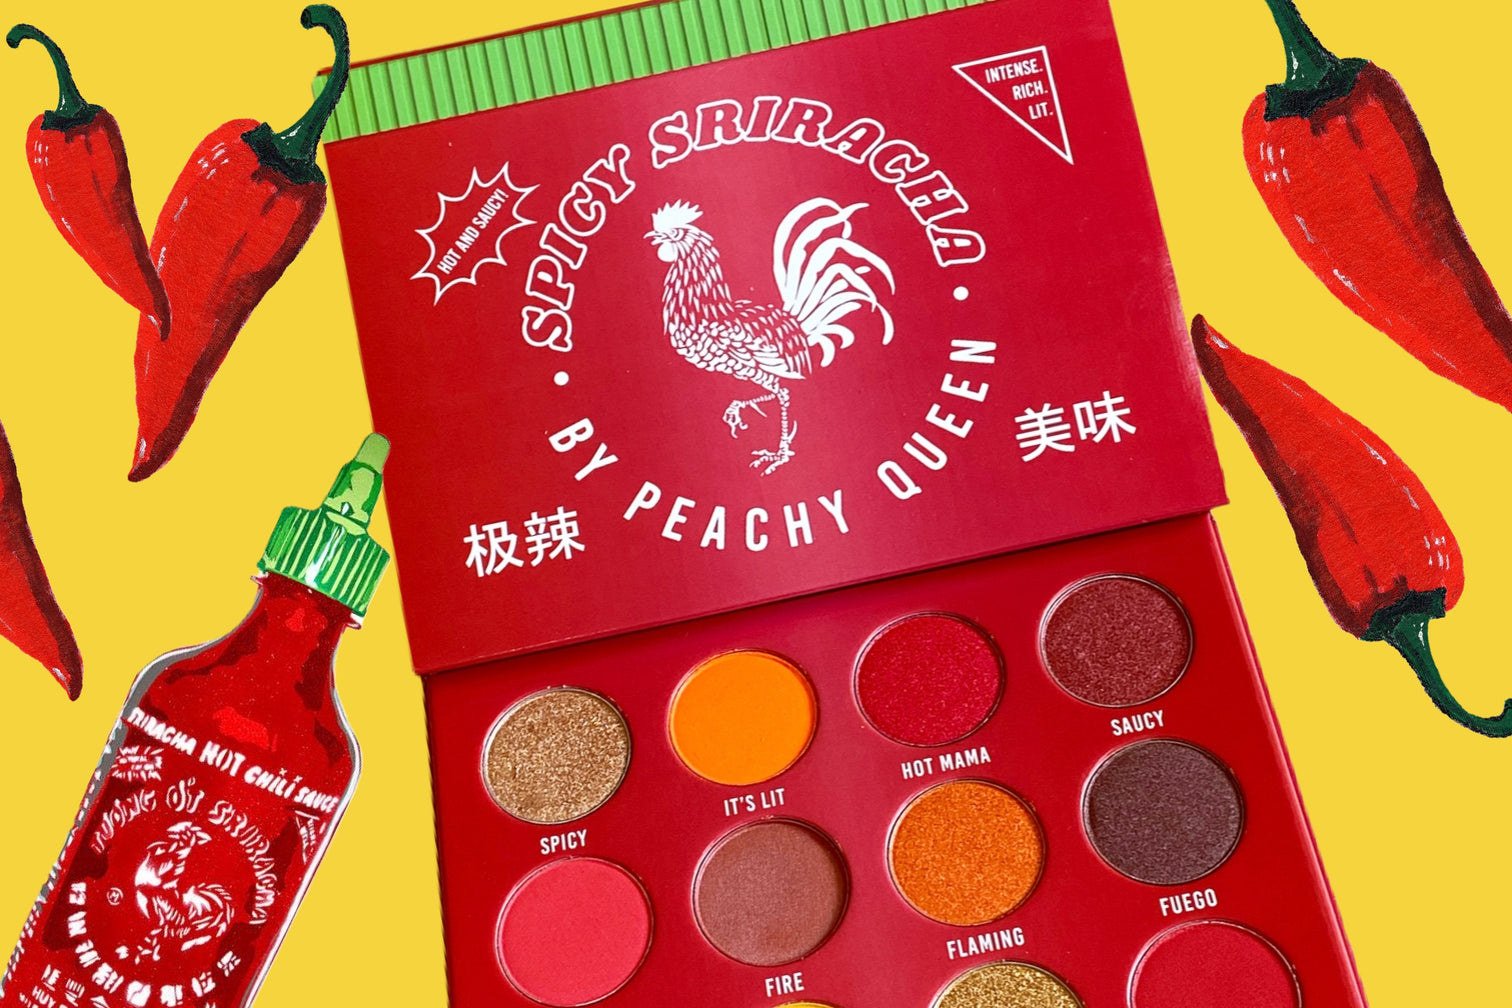 peachyqueen.com - Keep it Spicy!!